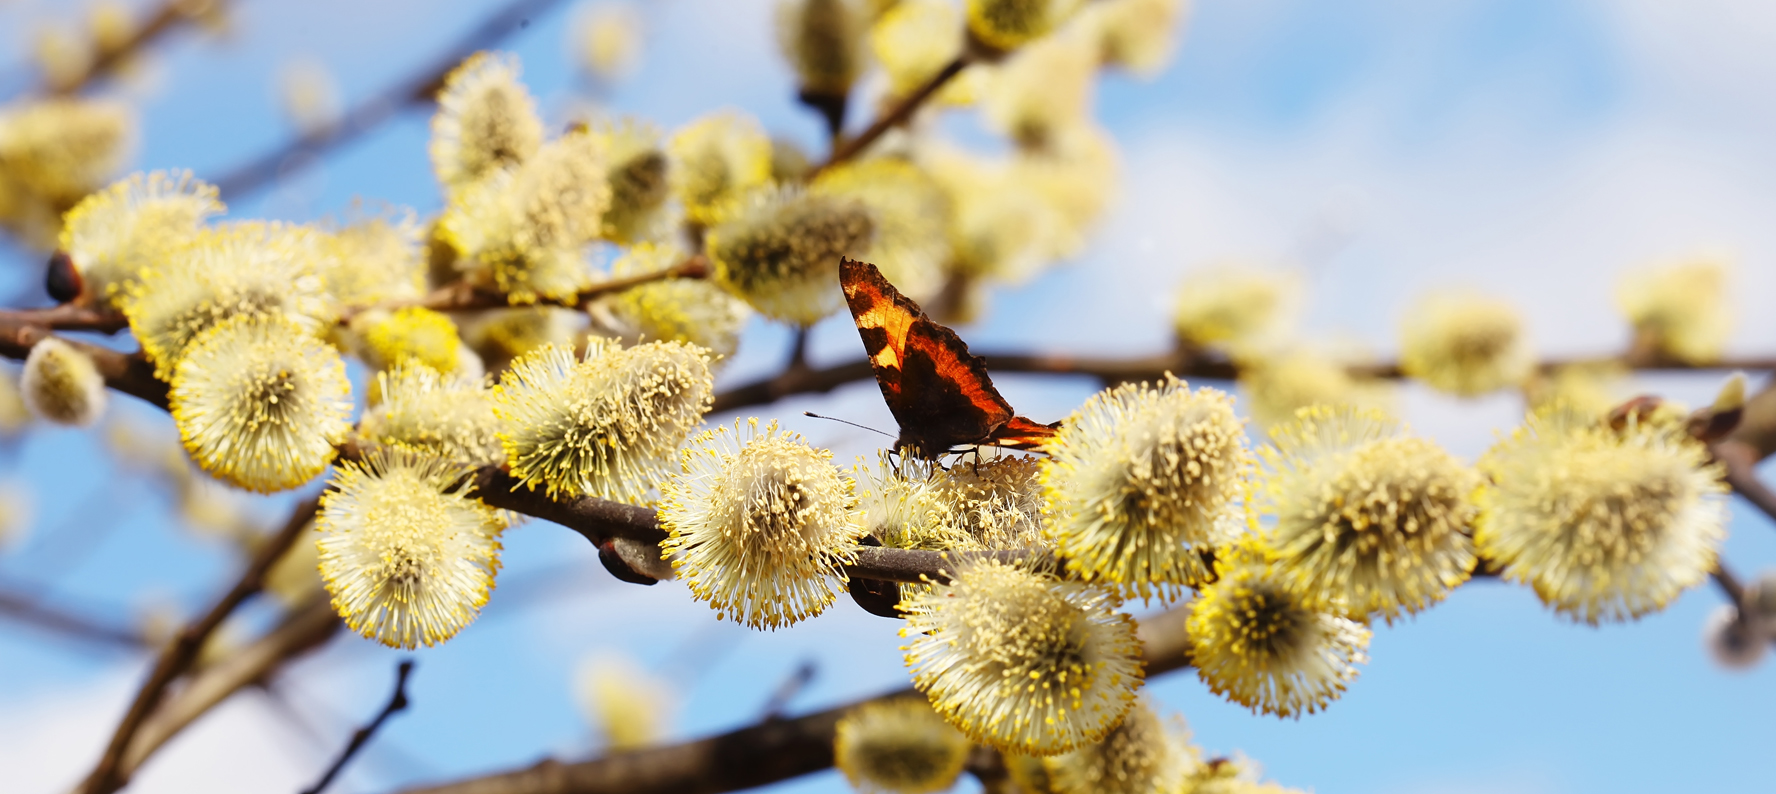 Black willow bark Extract is used in natural skin care products for its astringent, antiseptic, anti-inflammatory and antipyretic properties. Willow Bark Extract is a source of natural salicylic acid-like ingredients.